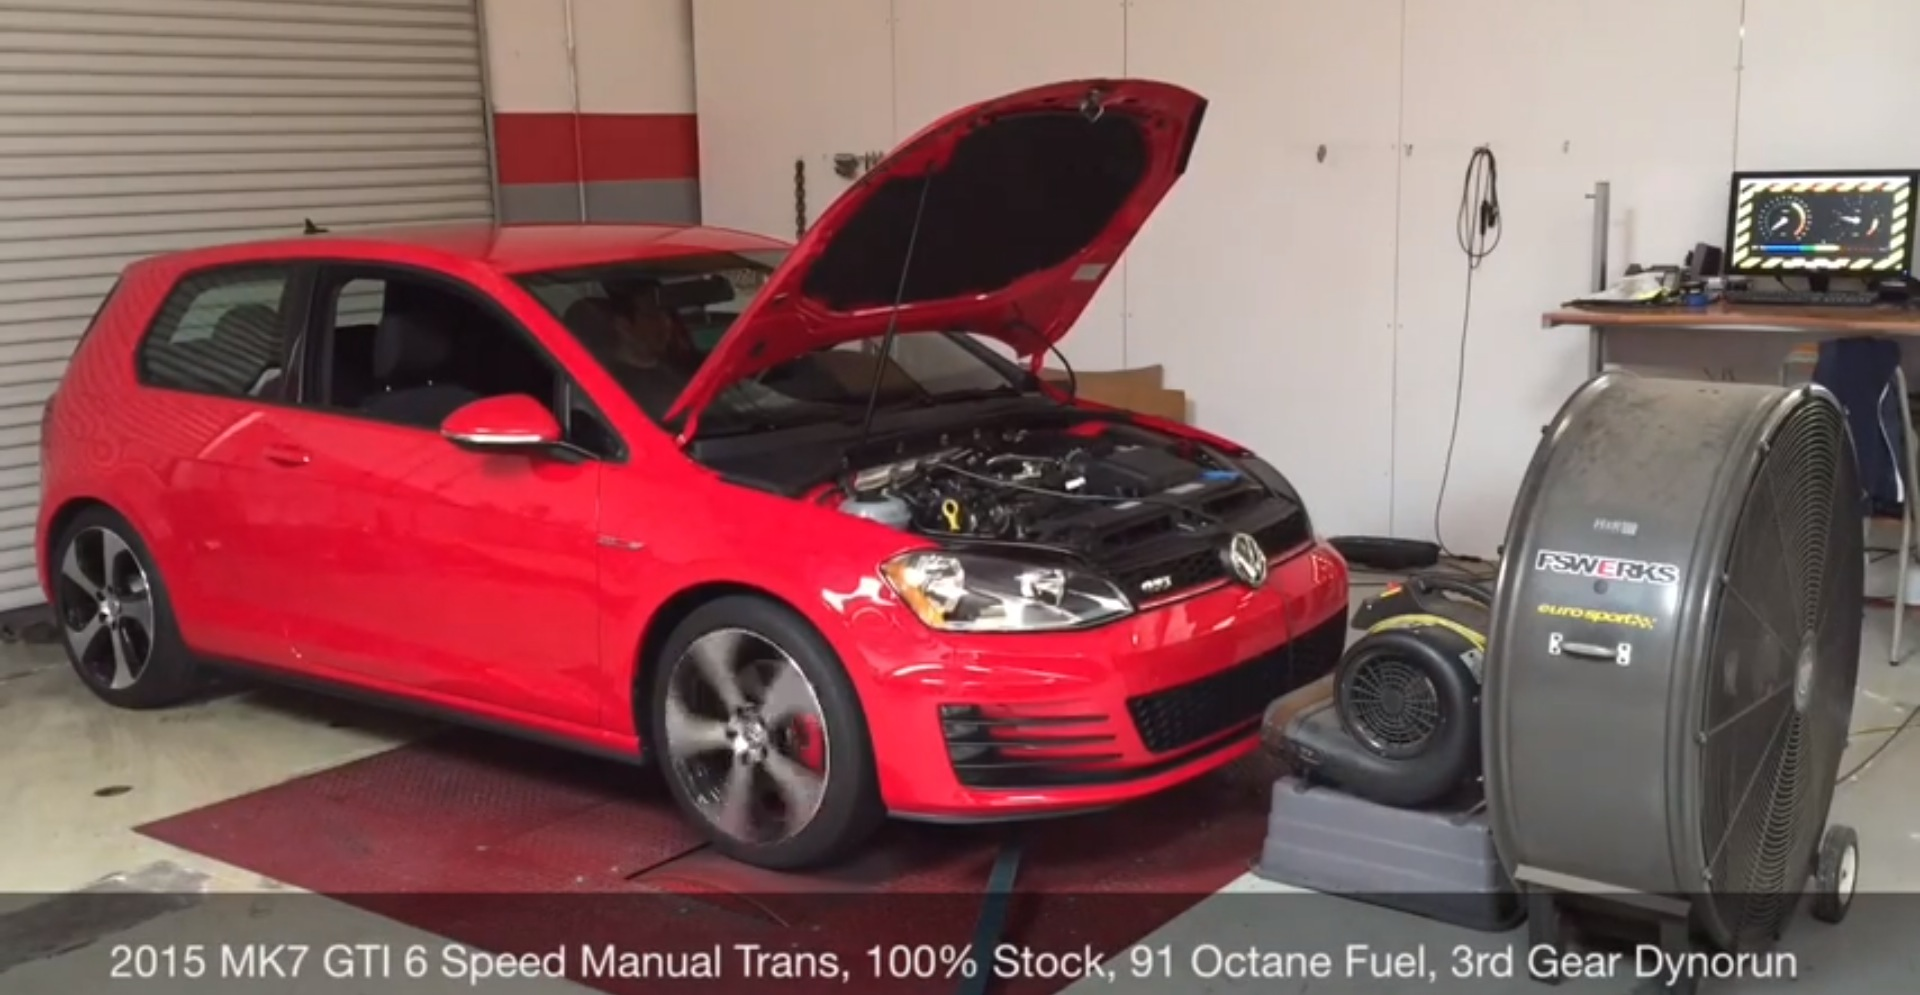 Stock 2015 Golf GTI Dyno Test Shows 263 HP, Proves VW